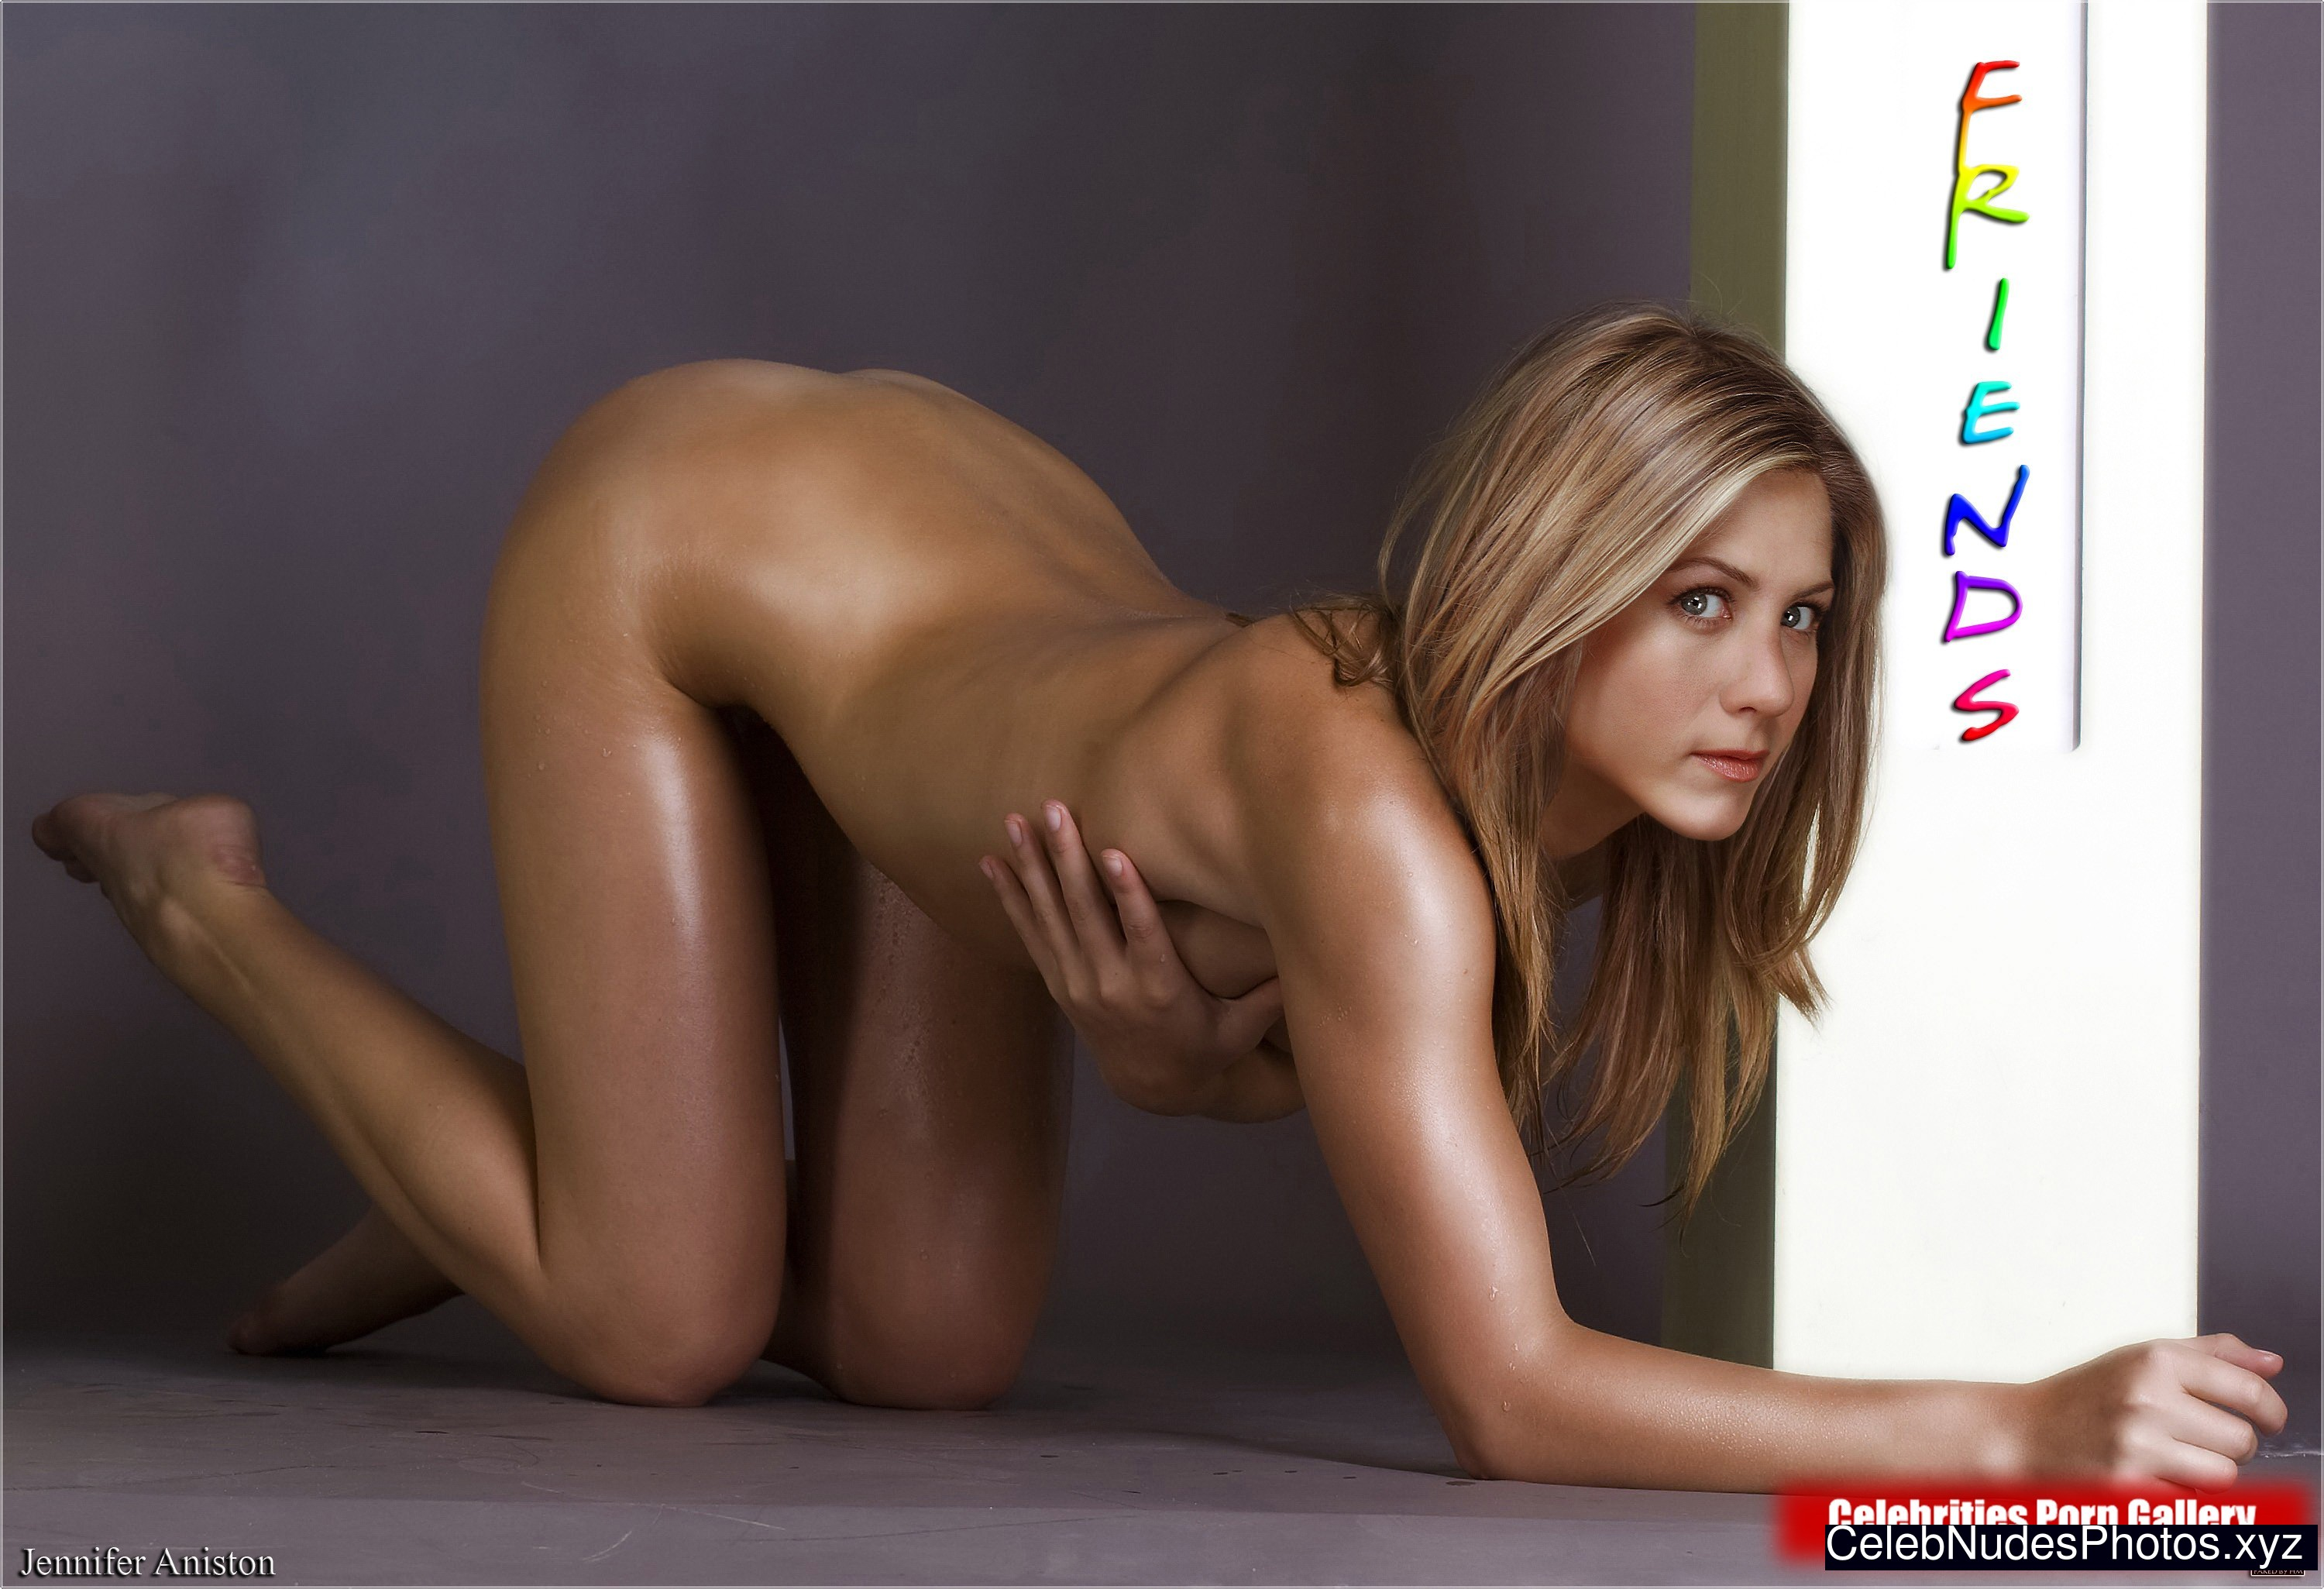 Jennifer Aniston celeb nudes